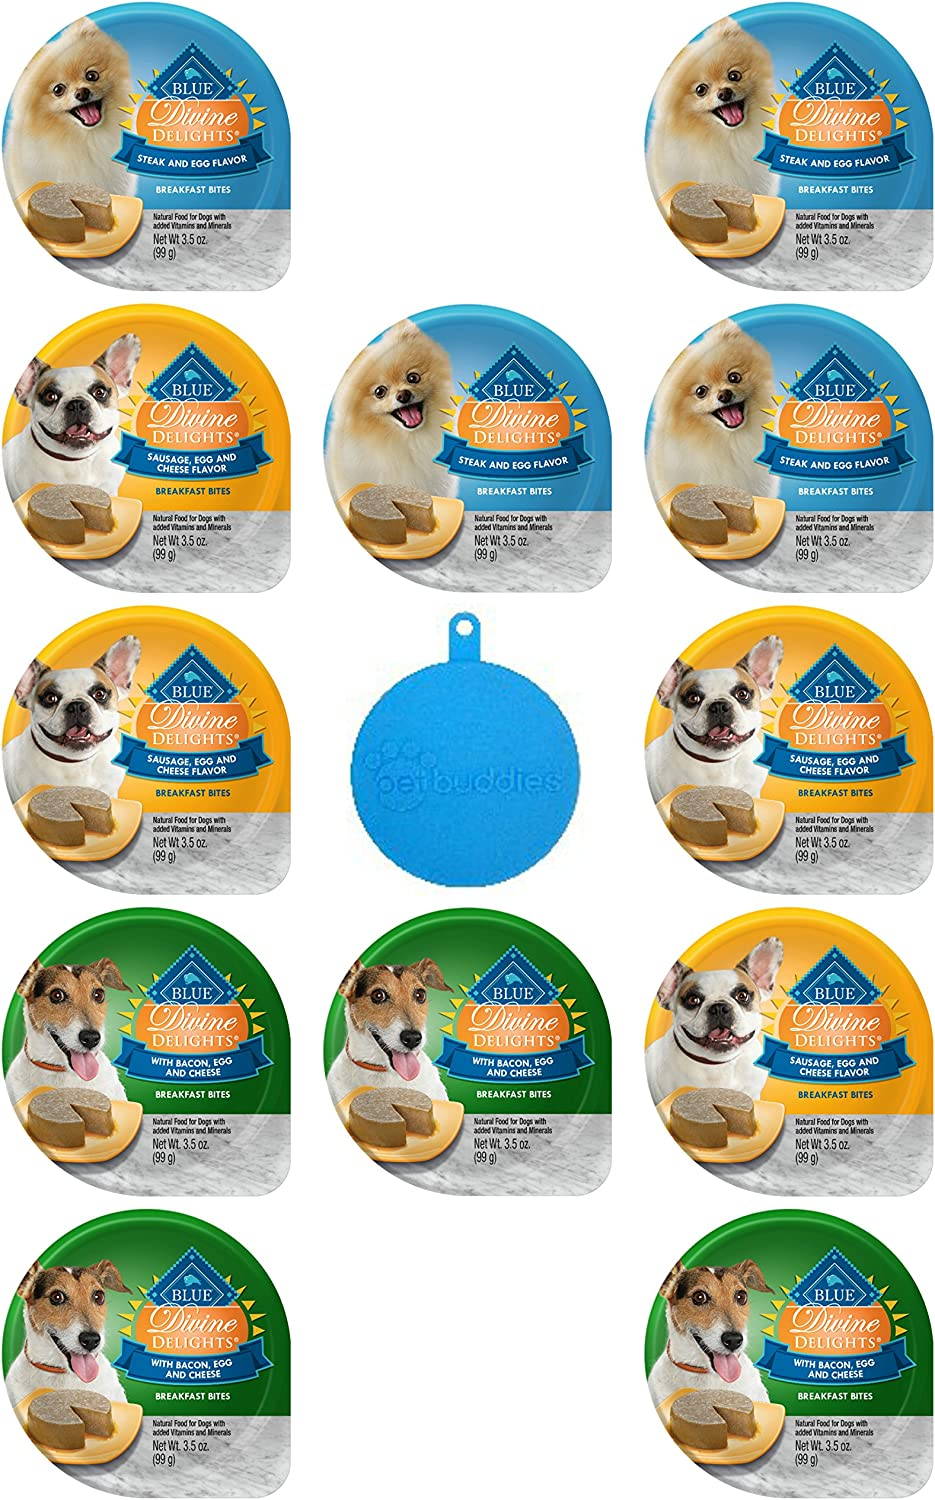 bluee Divine Delights Breakfast Bites for Dogs in 3 Flavors  Steak & Egg; Sausage, Egg & Cheese; and Bacon, Egg & Cheese  3.5 Oz Ea, 12 Cups Total  Plus Silicone Dog Food Can Cover  13 Items Total